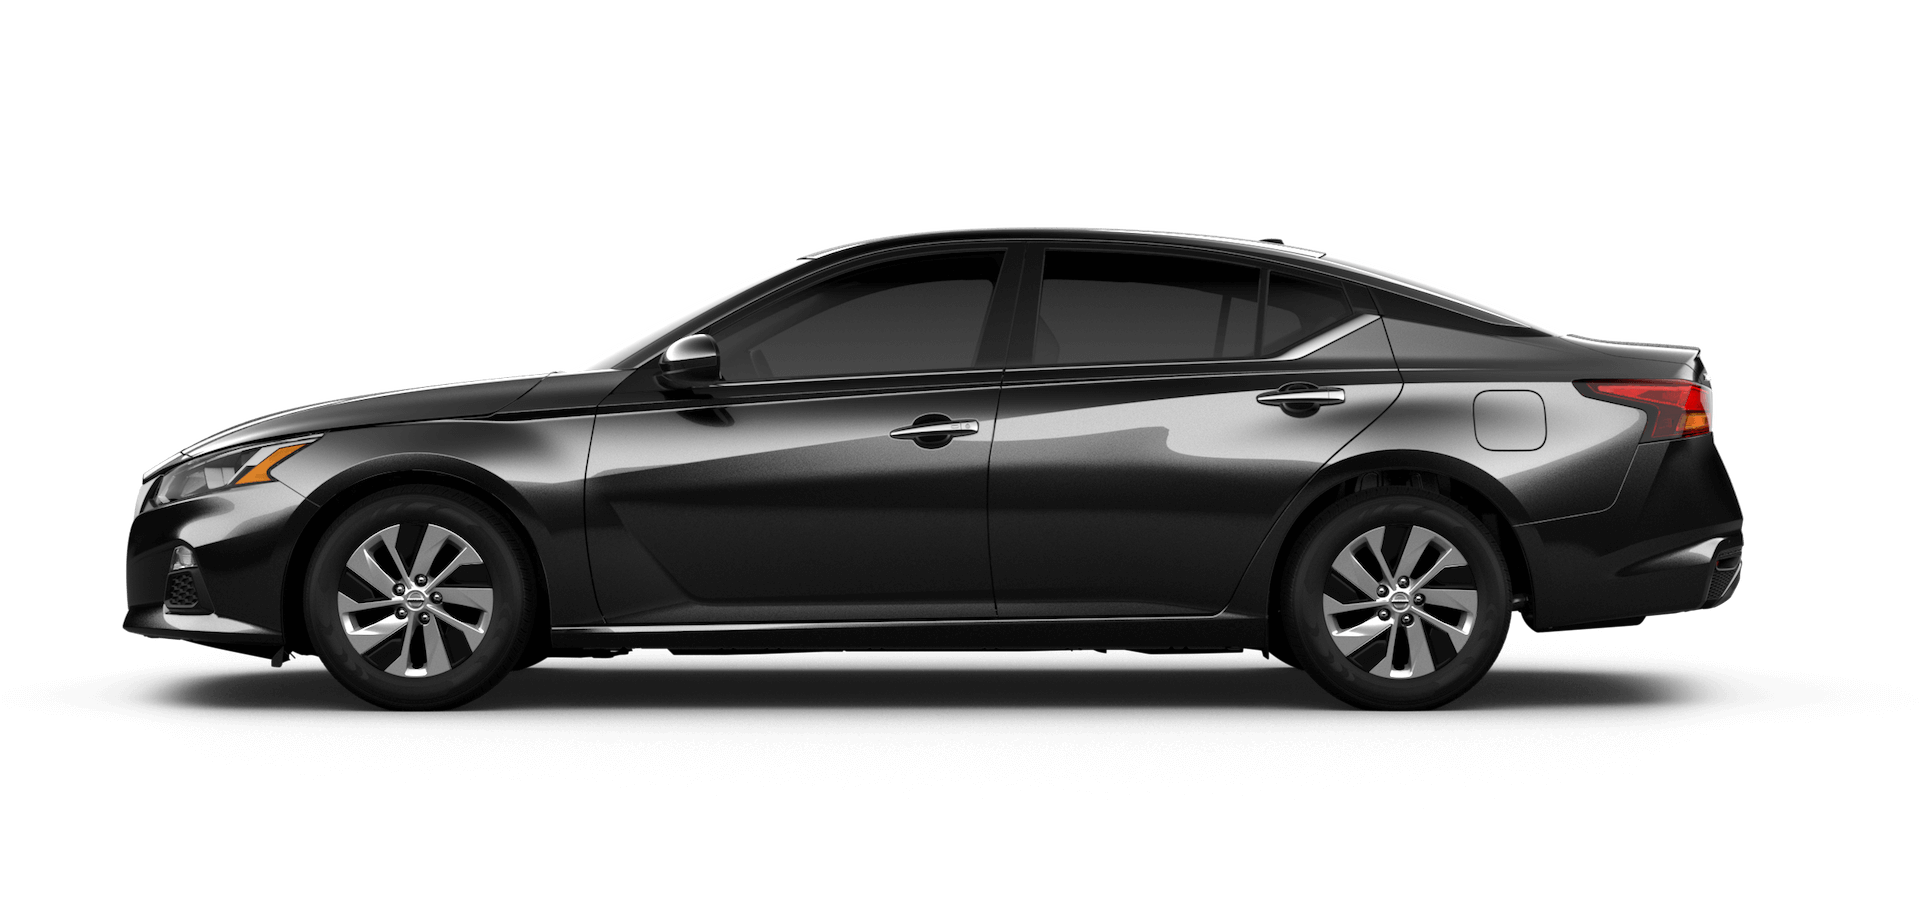 Altima S Super Black